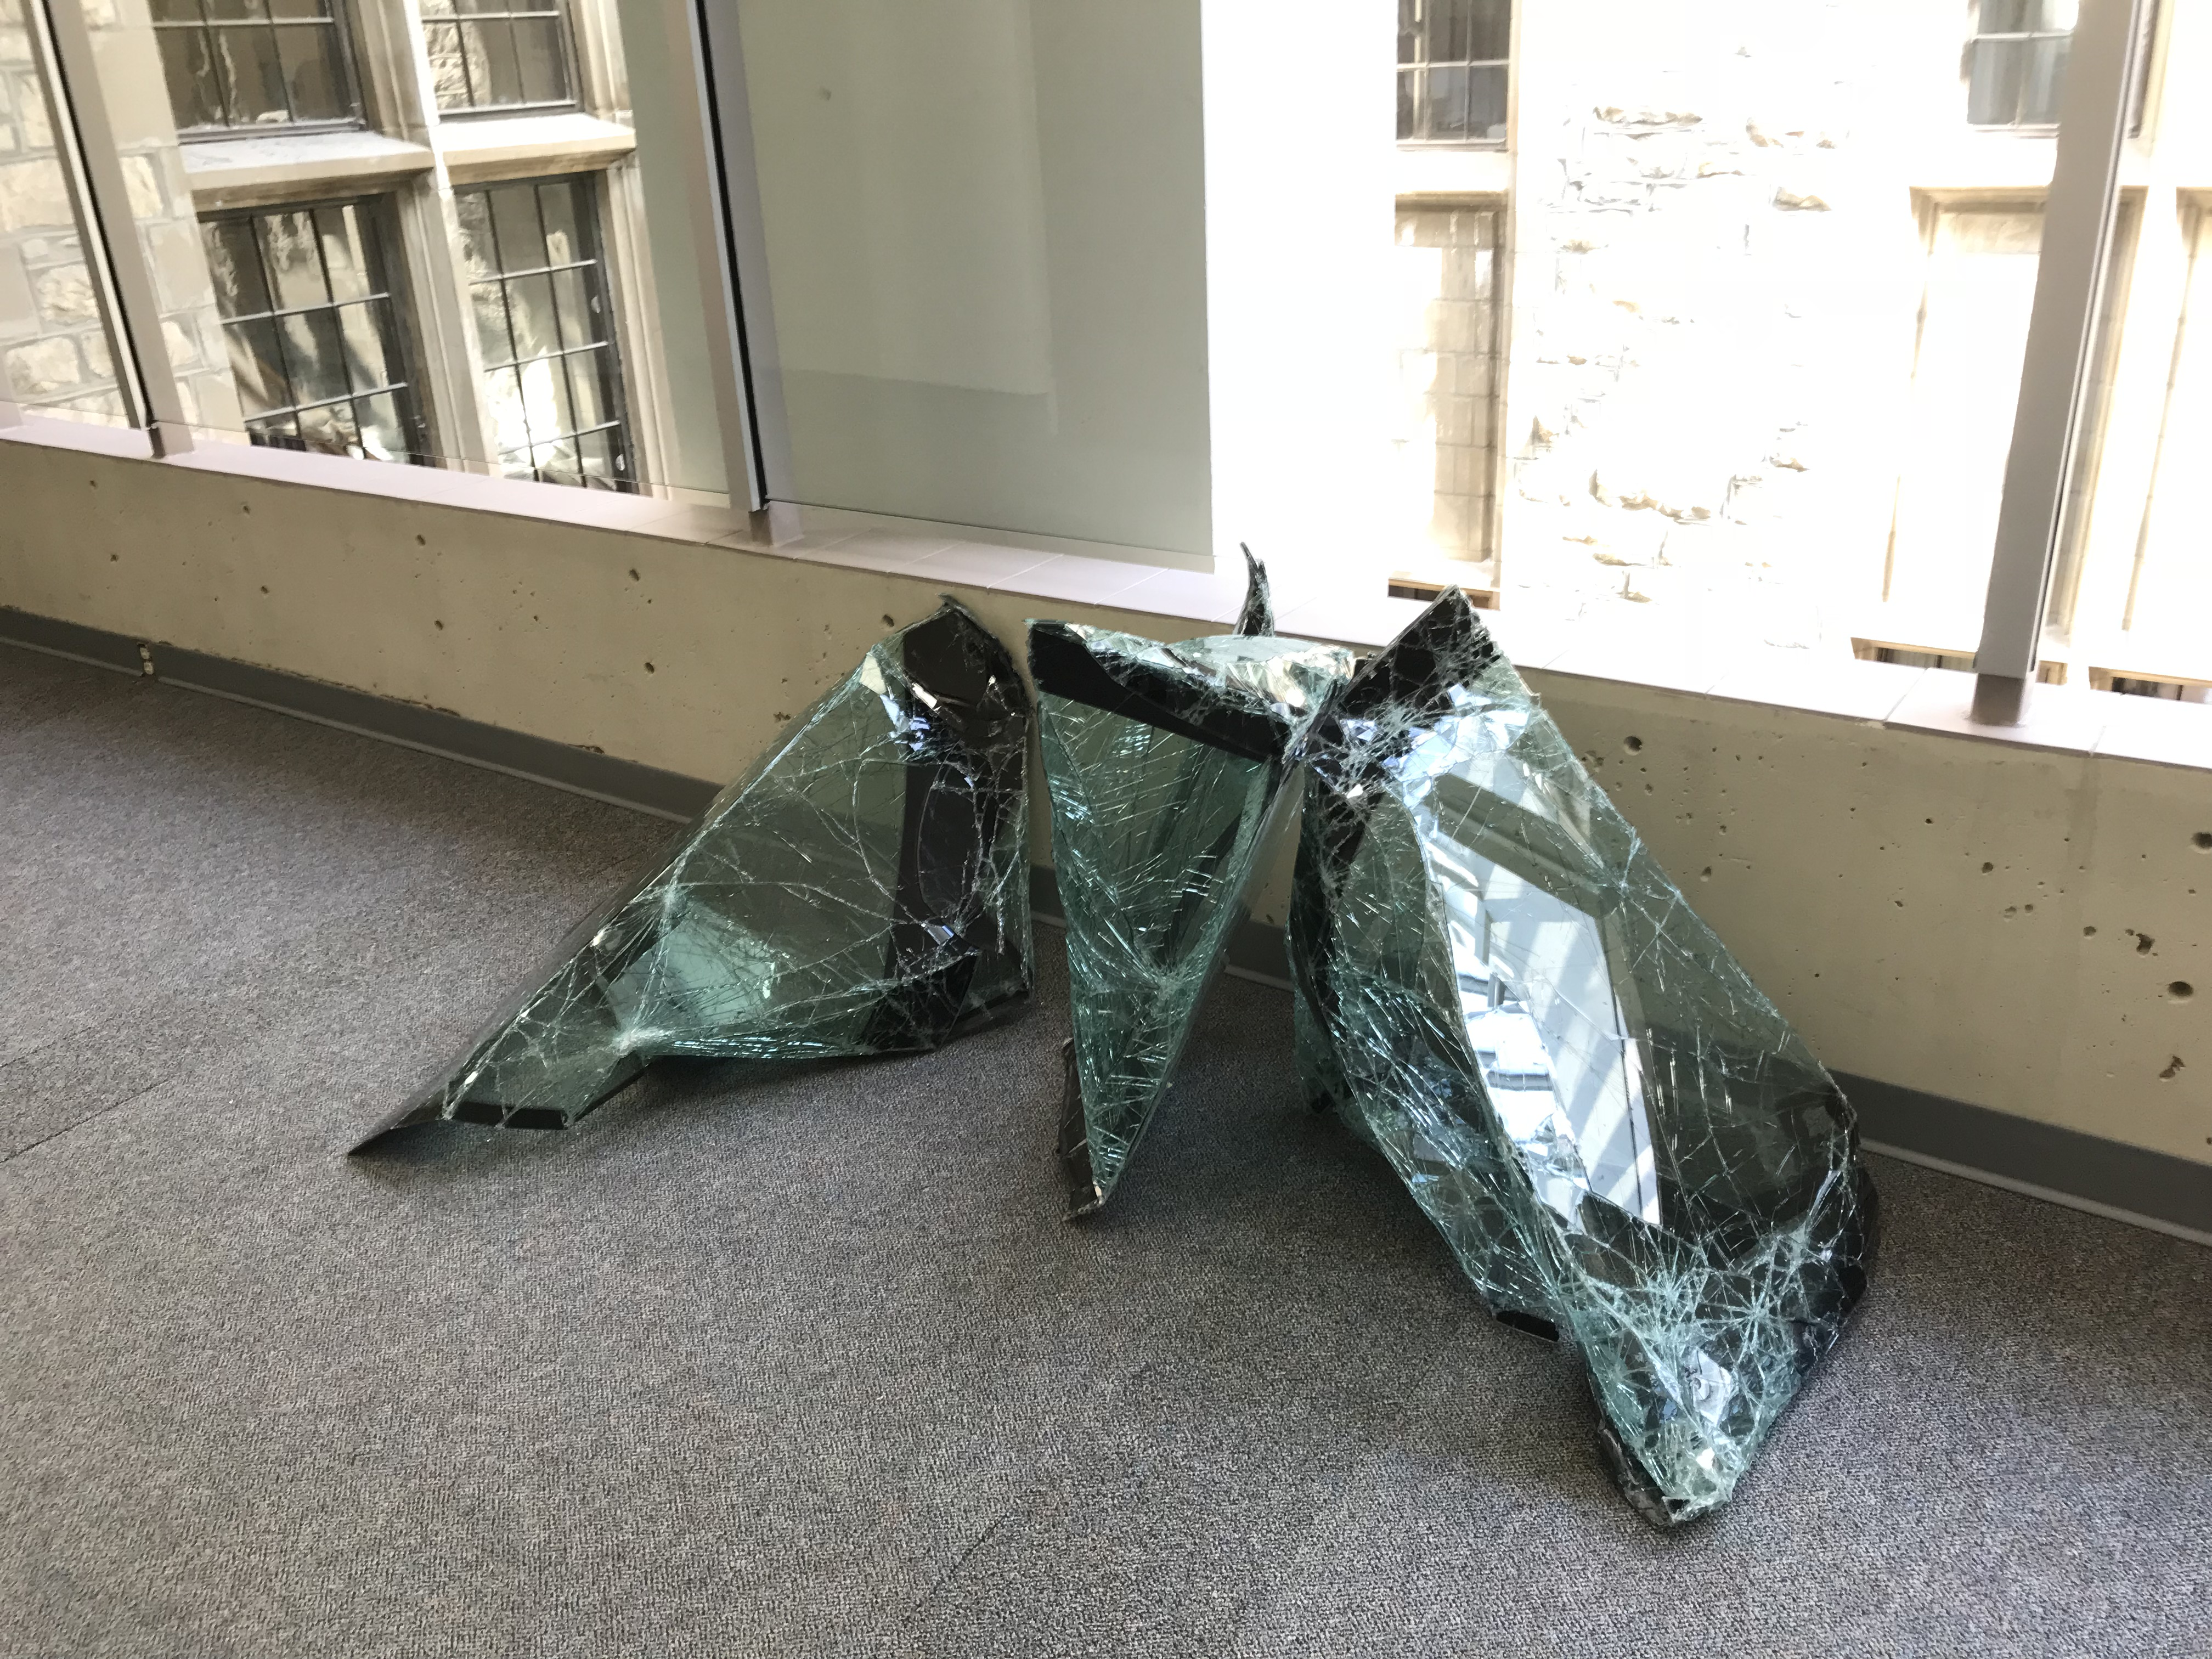 An art project created from discarded and repurposed glass windshields for ARTCycled 2018 by Geoffrey Vaz